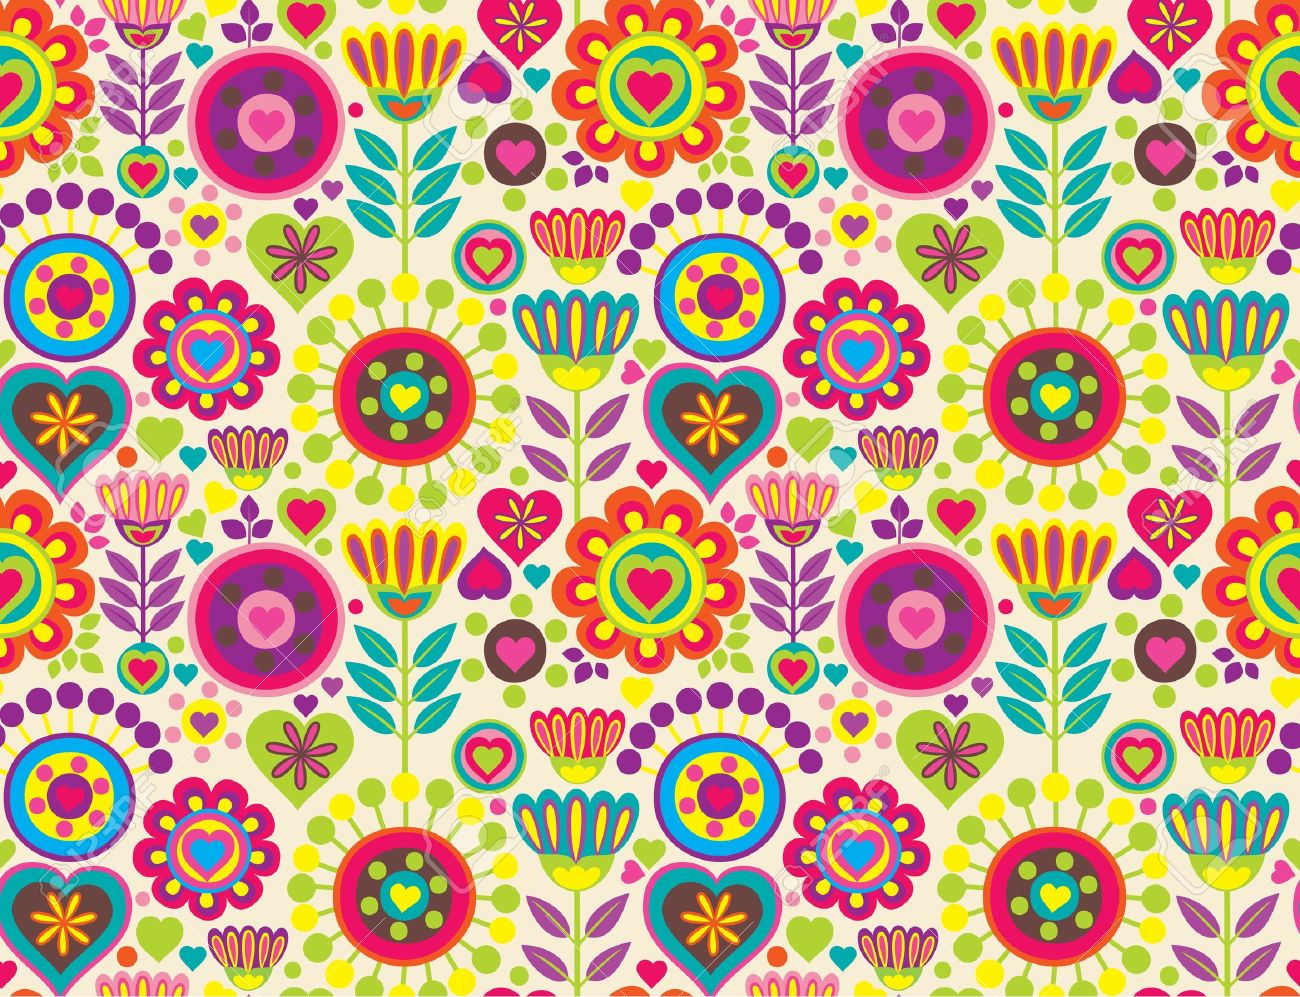 Bright Colorful Funny Vector Seamless Pattern With Flowers Royalty